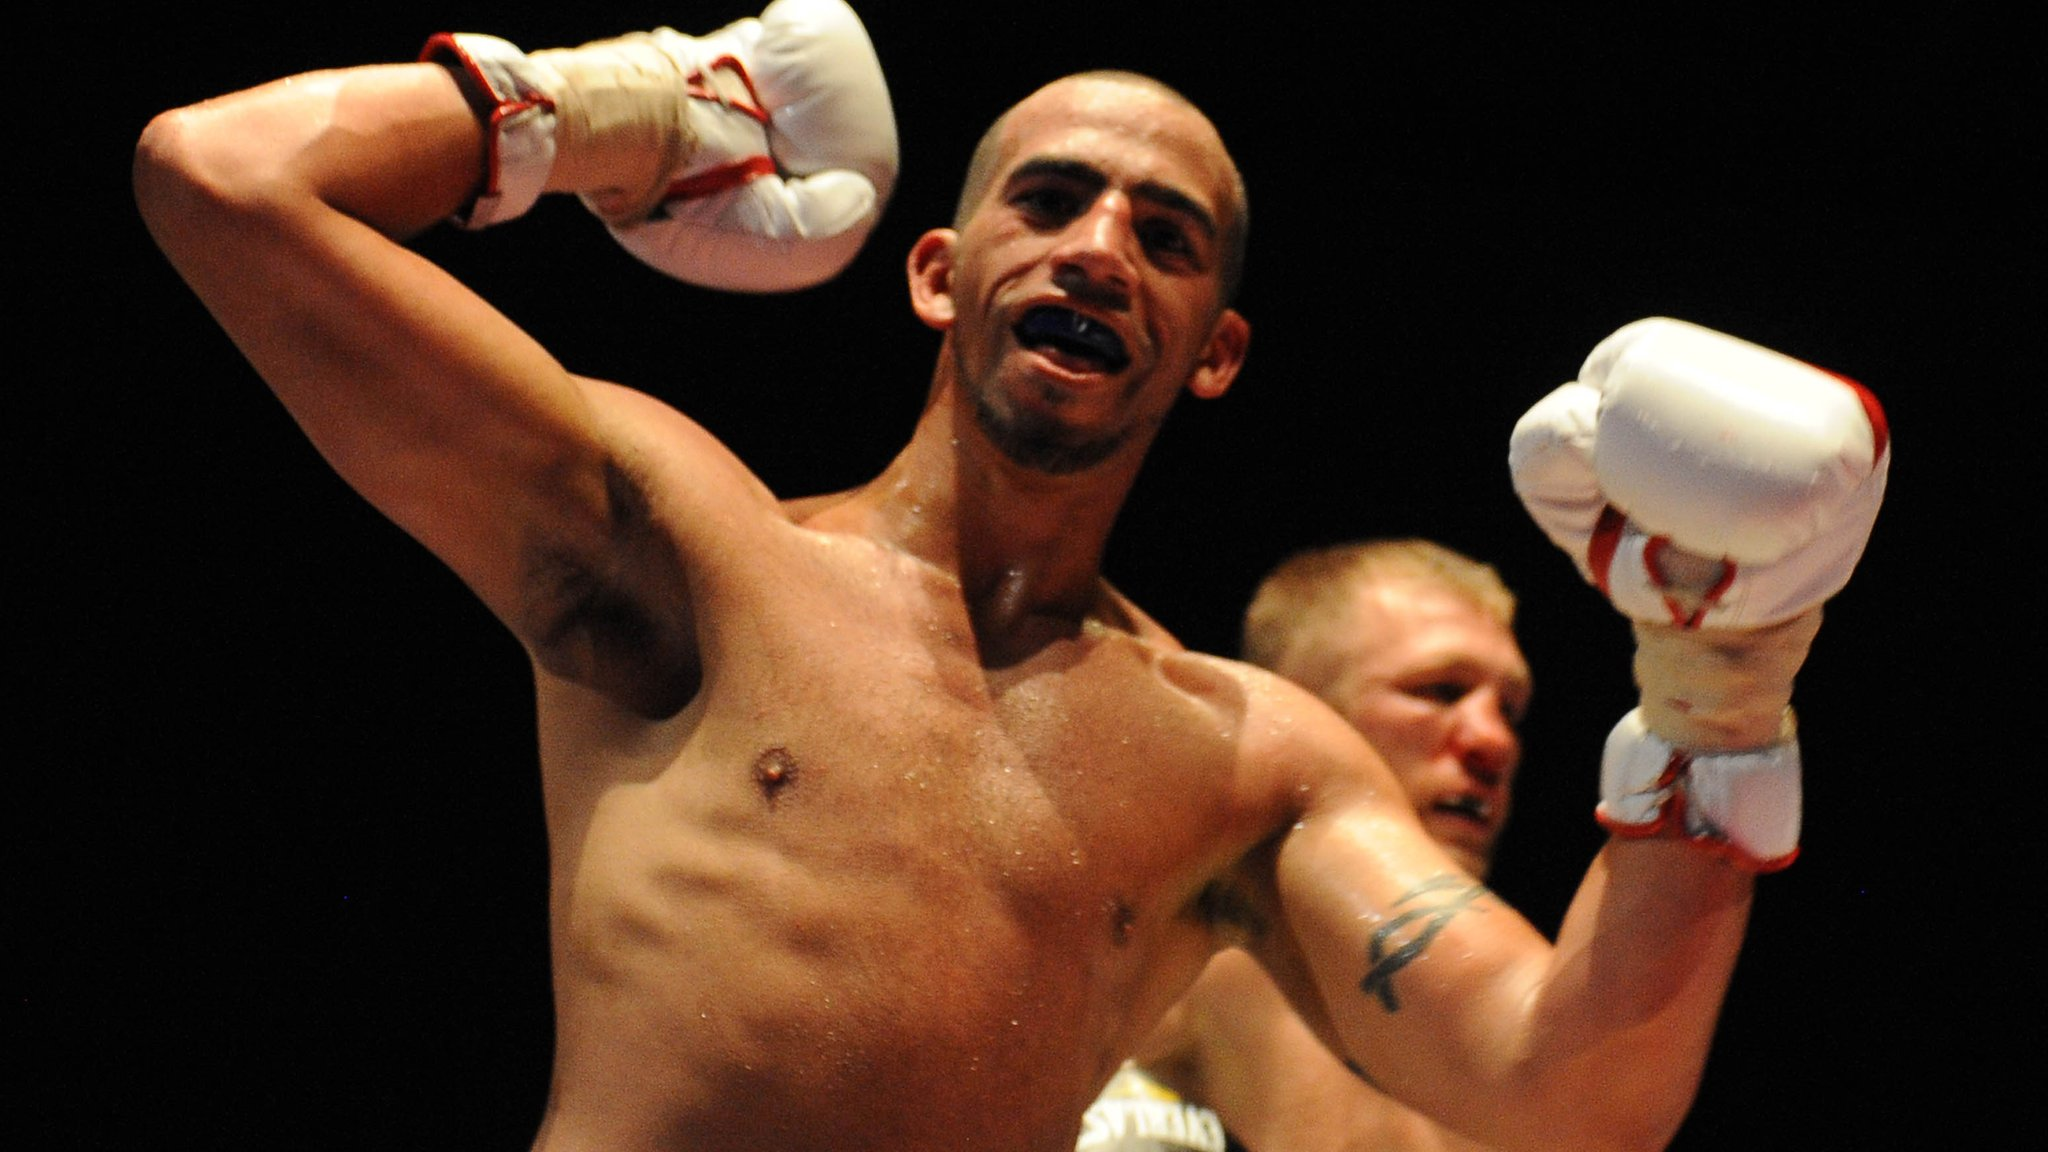 Boxer Bradley Pryce feared he 'would die in the ring' due to impaired vision